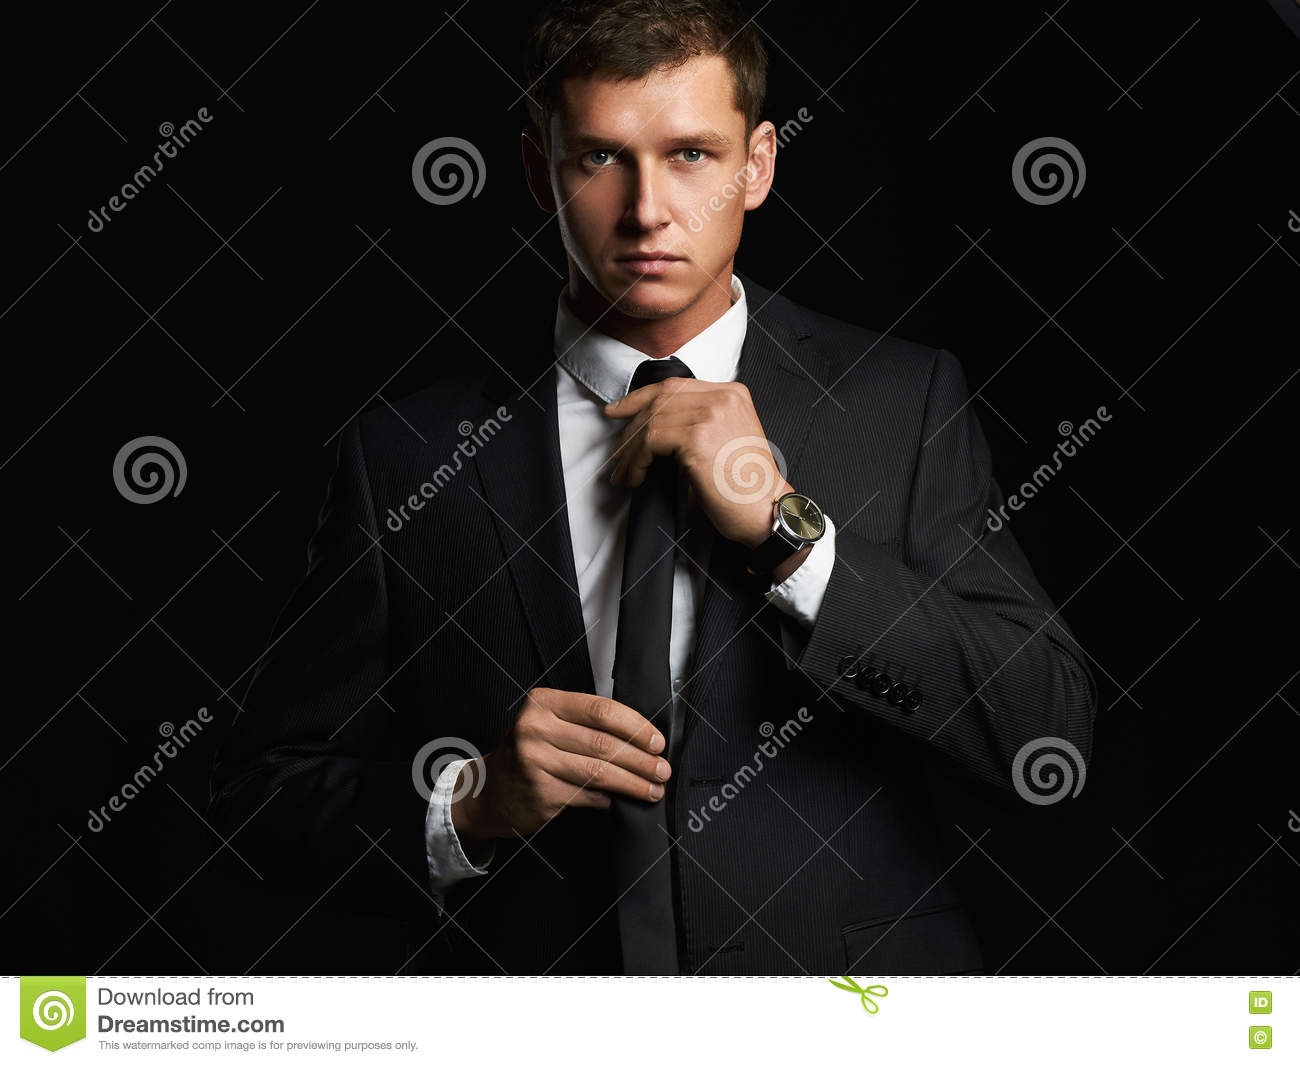 Handsome young businessman adjusting his tie. young man in suit